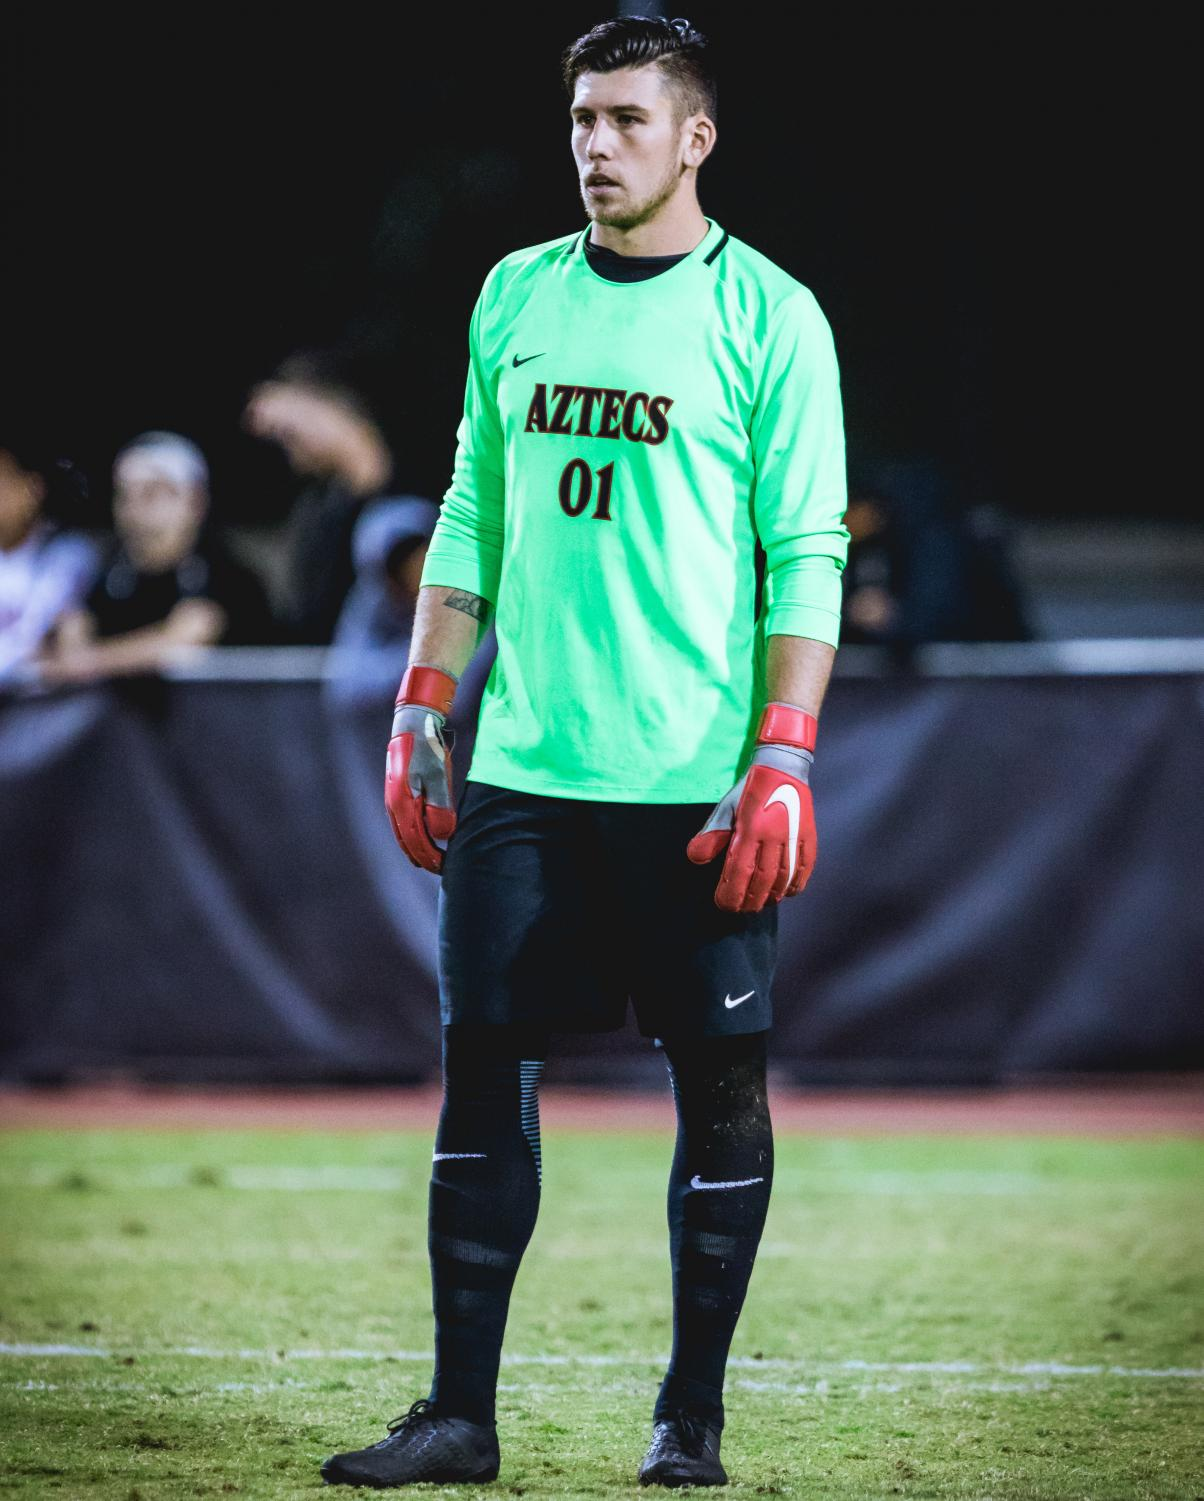 Redshirt senior goalkeeper Cameron Hogg during the Aztecs 2-0 loss to Stanford on Nov. 1 at the SDSU Sports Deck.